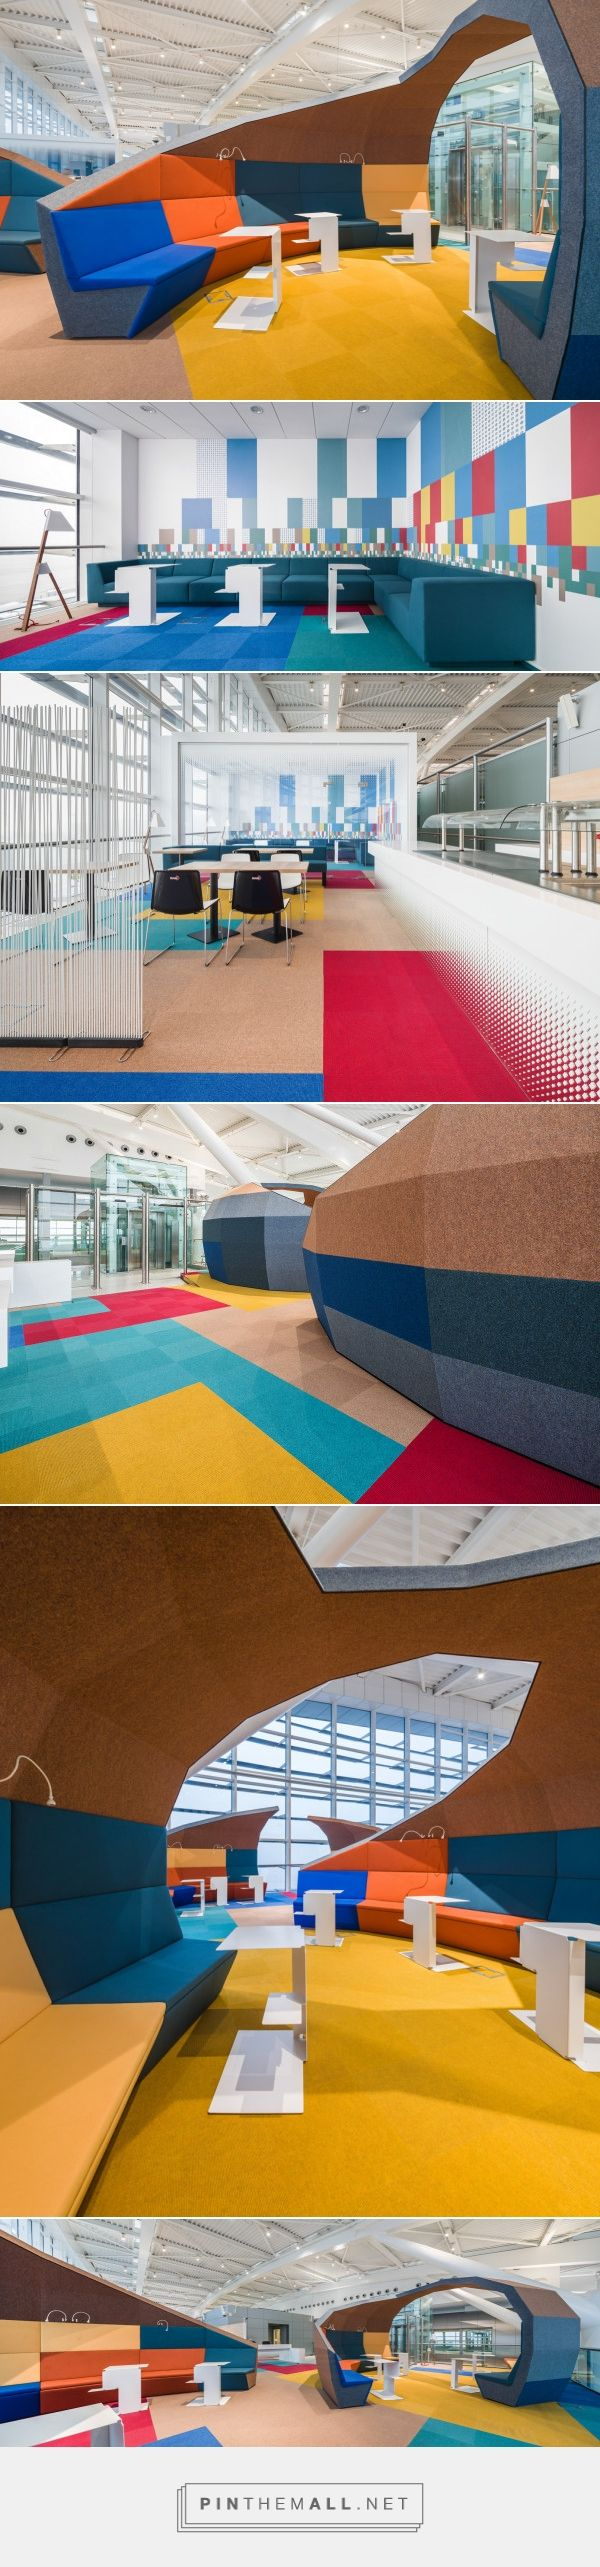 A Colorful Airport Lounge Designed to Excite